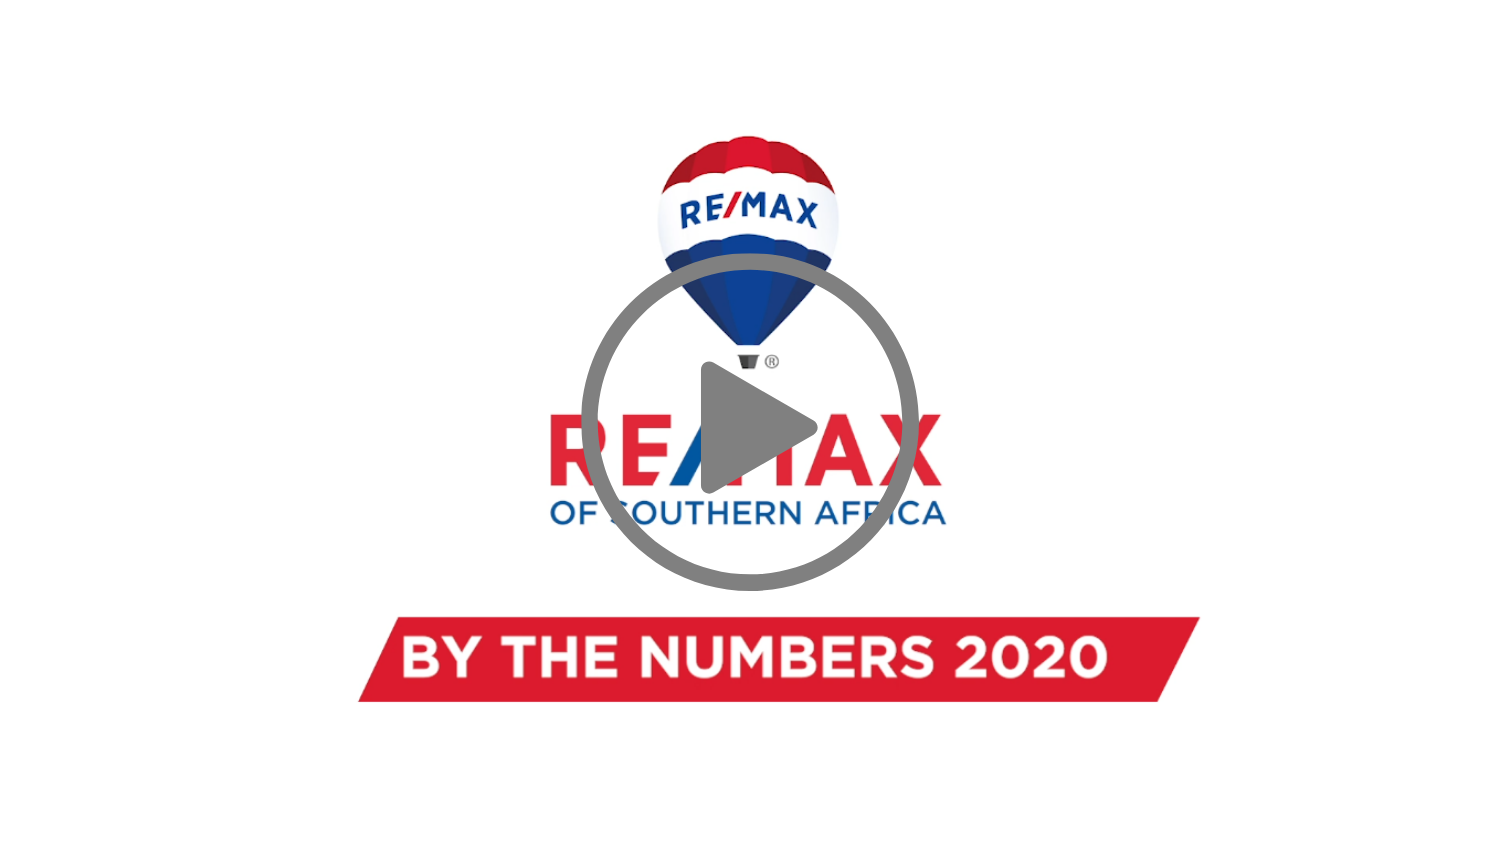 RE/MAX BY THE NUMBERS 2020